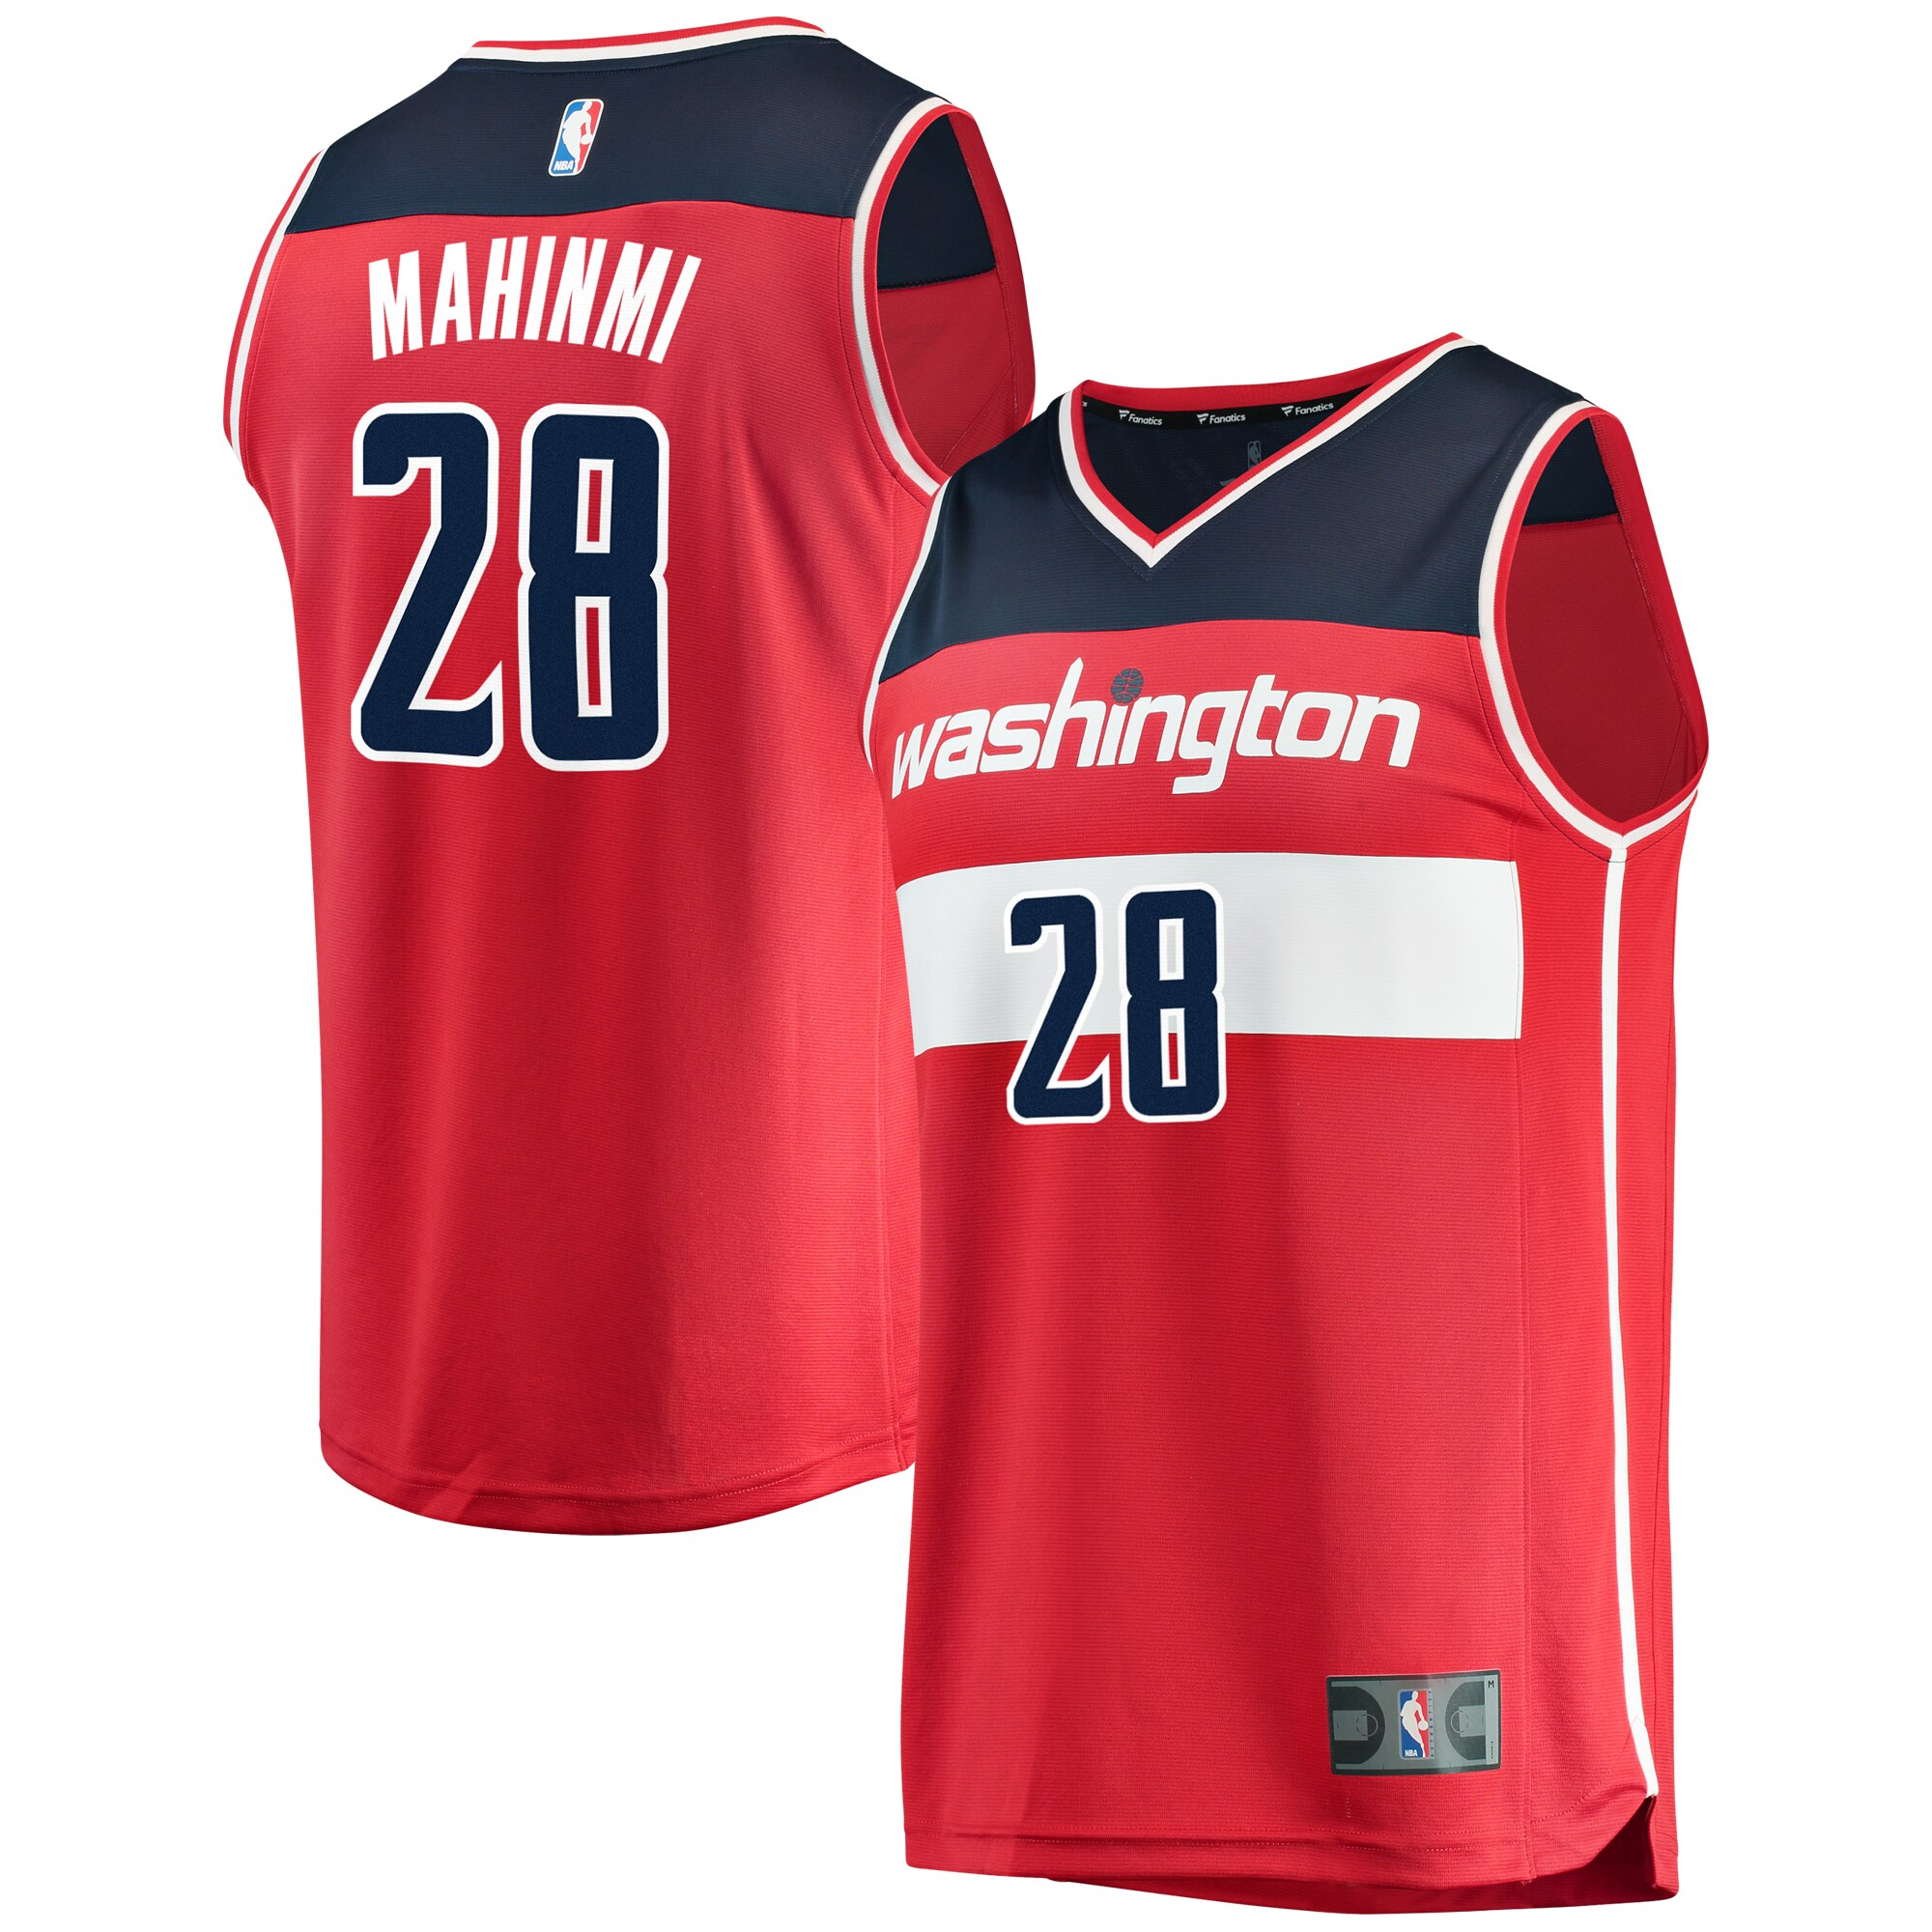 Ian Mahinmi Washington Wizards Fanatics Branded Fast Break Replica Team Color Player Jersey Red - Icon Edition